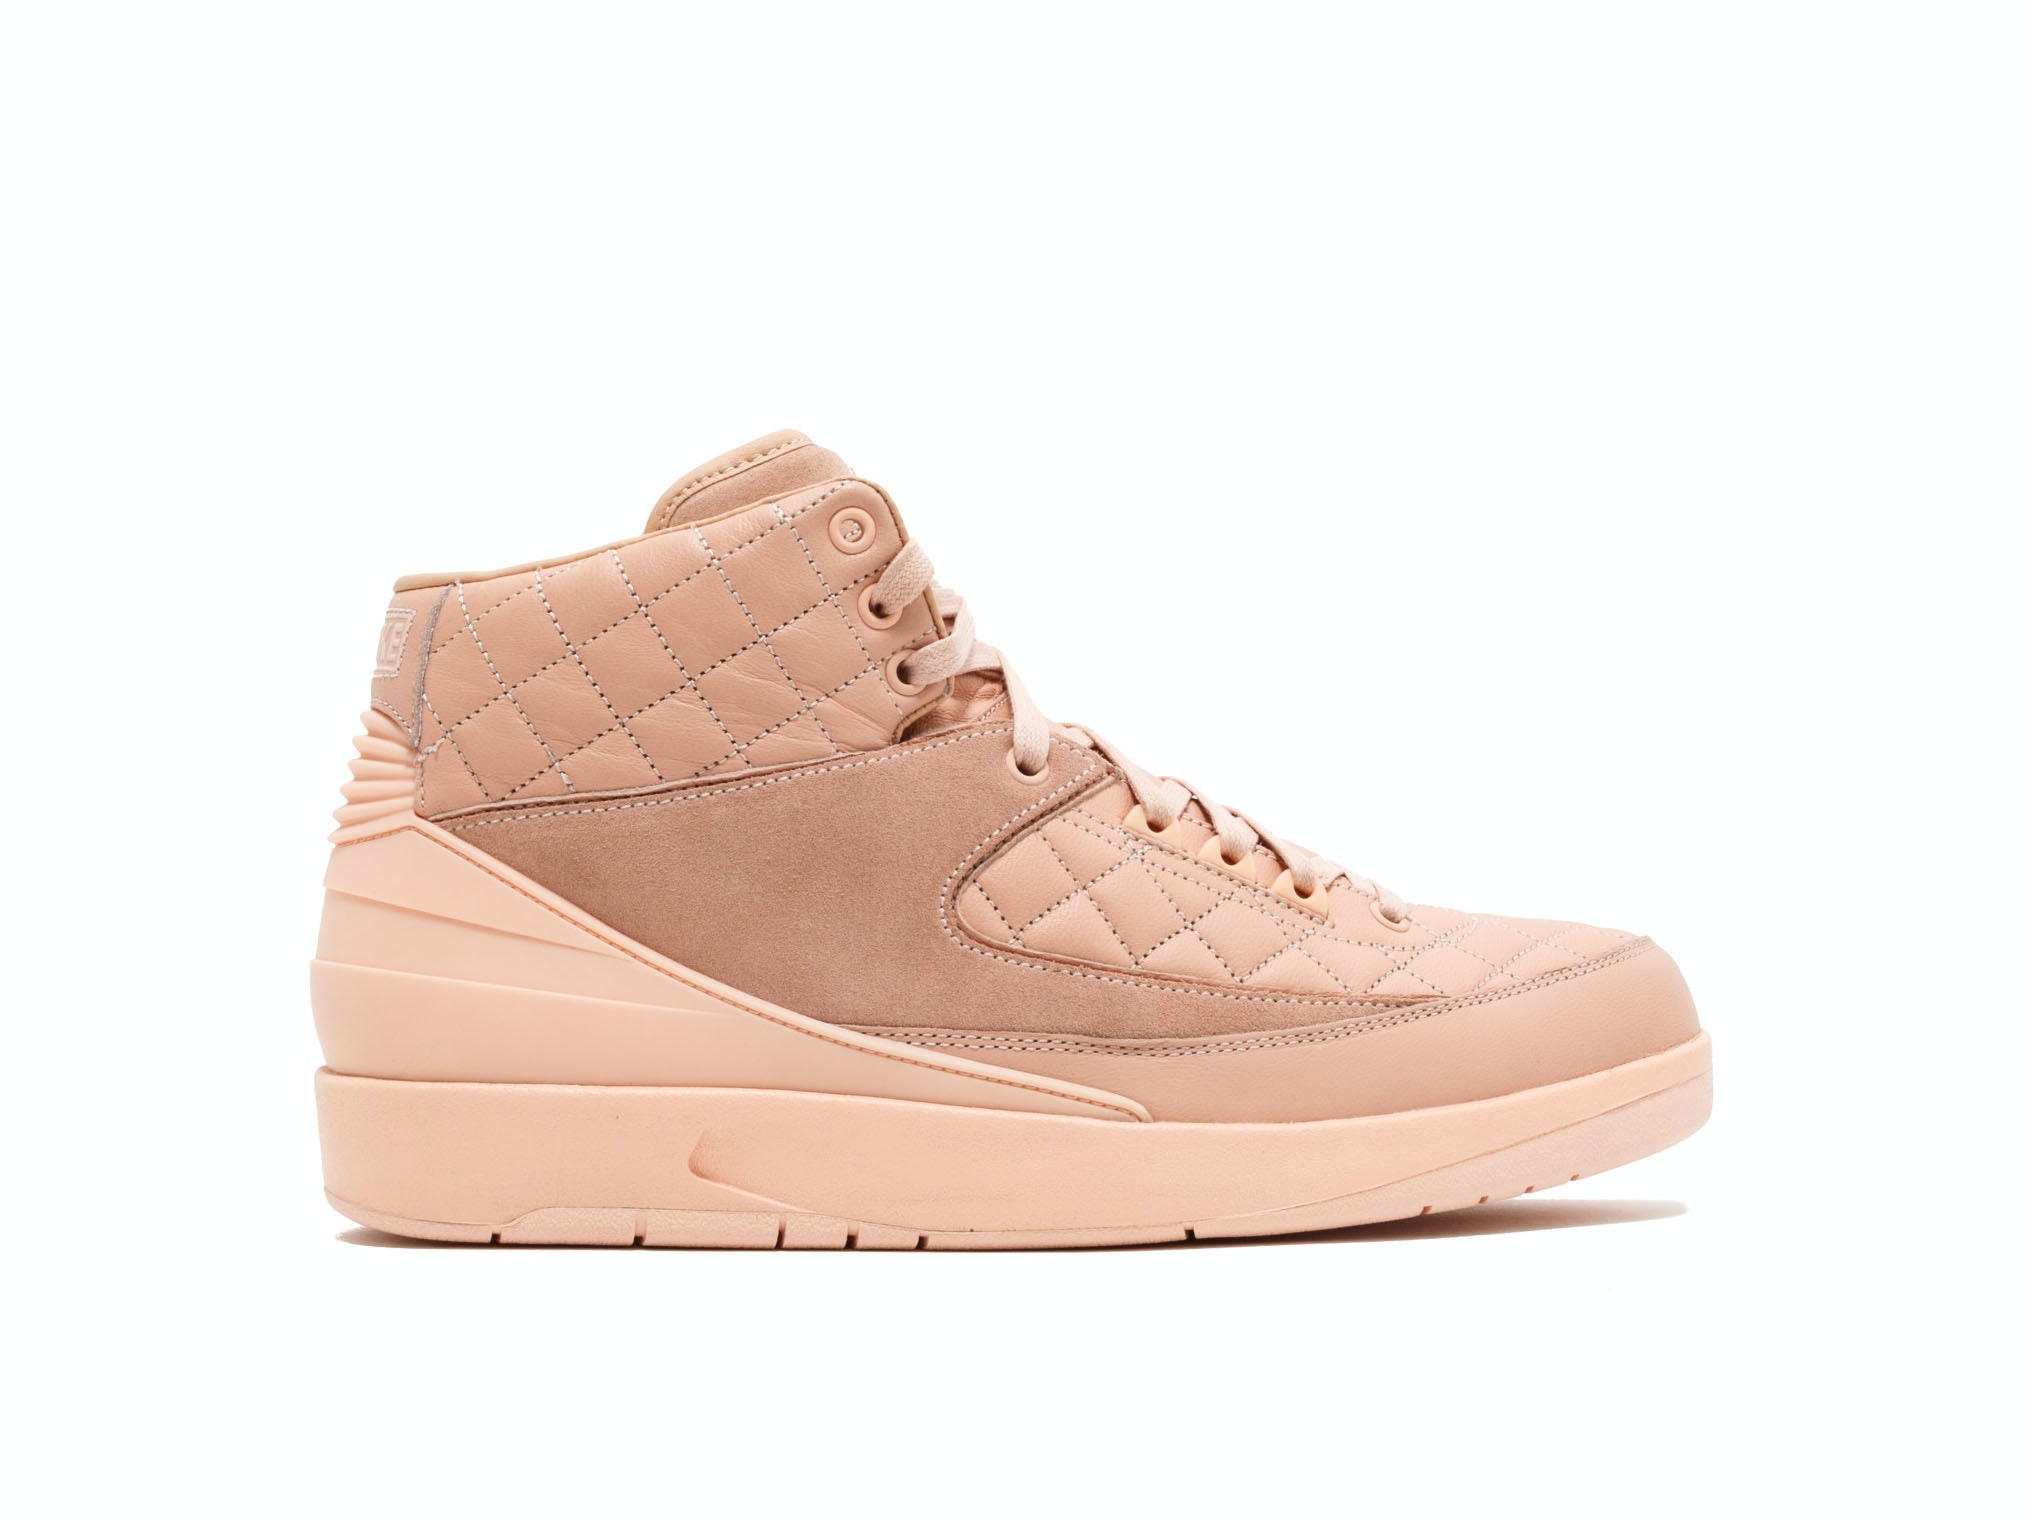 19a3622e9195a1 Shop Air Jordan 2 Retro Arctic Orange x Just Don Online